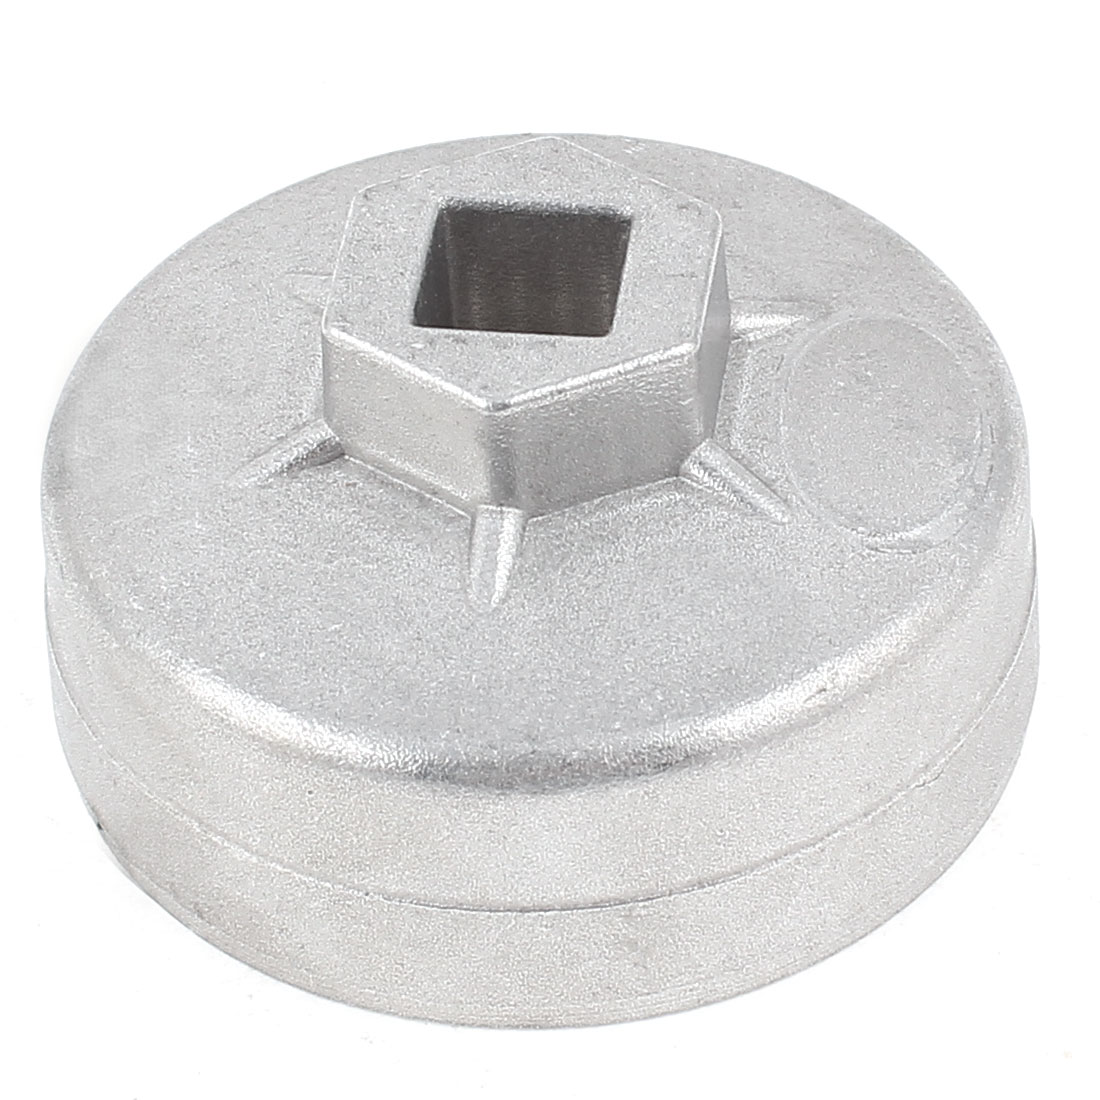 65mm 14 Flutes Auto Car Oil Filter Cartridge Cap Wrench Tool Socket Remover